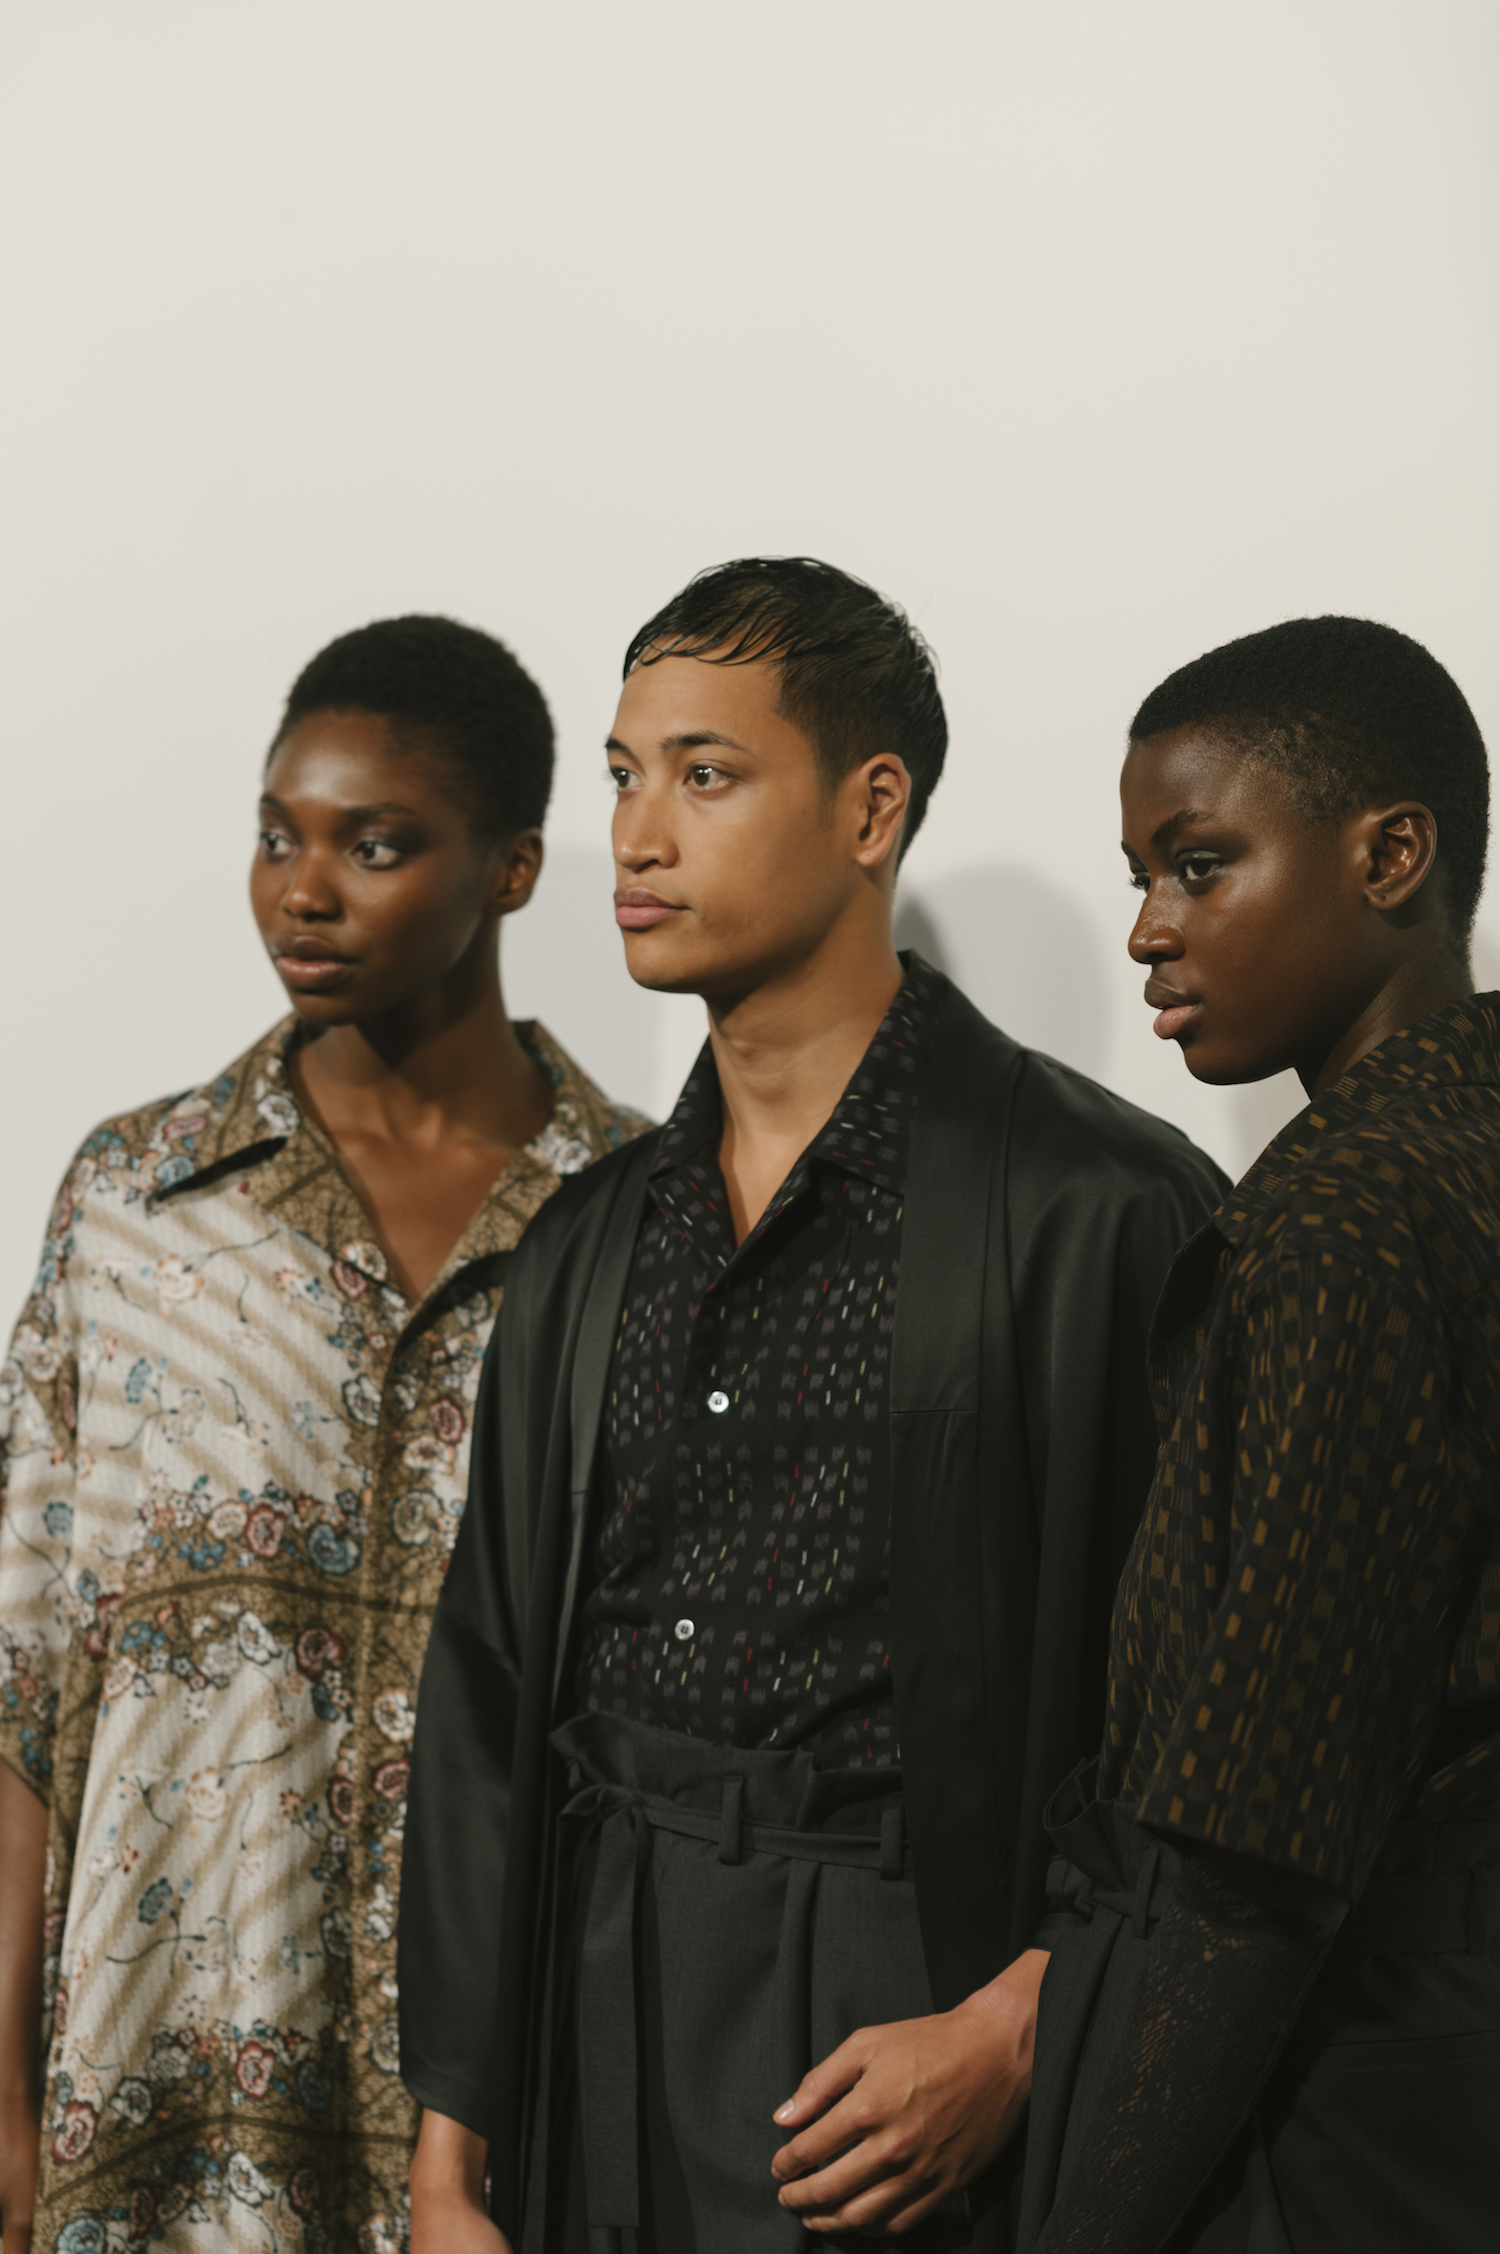 Backstage: Edward Crutchley SS19 @ LFWM